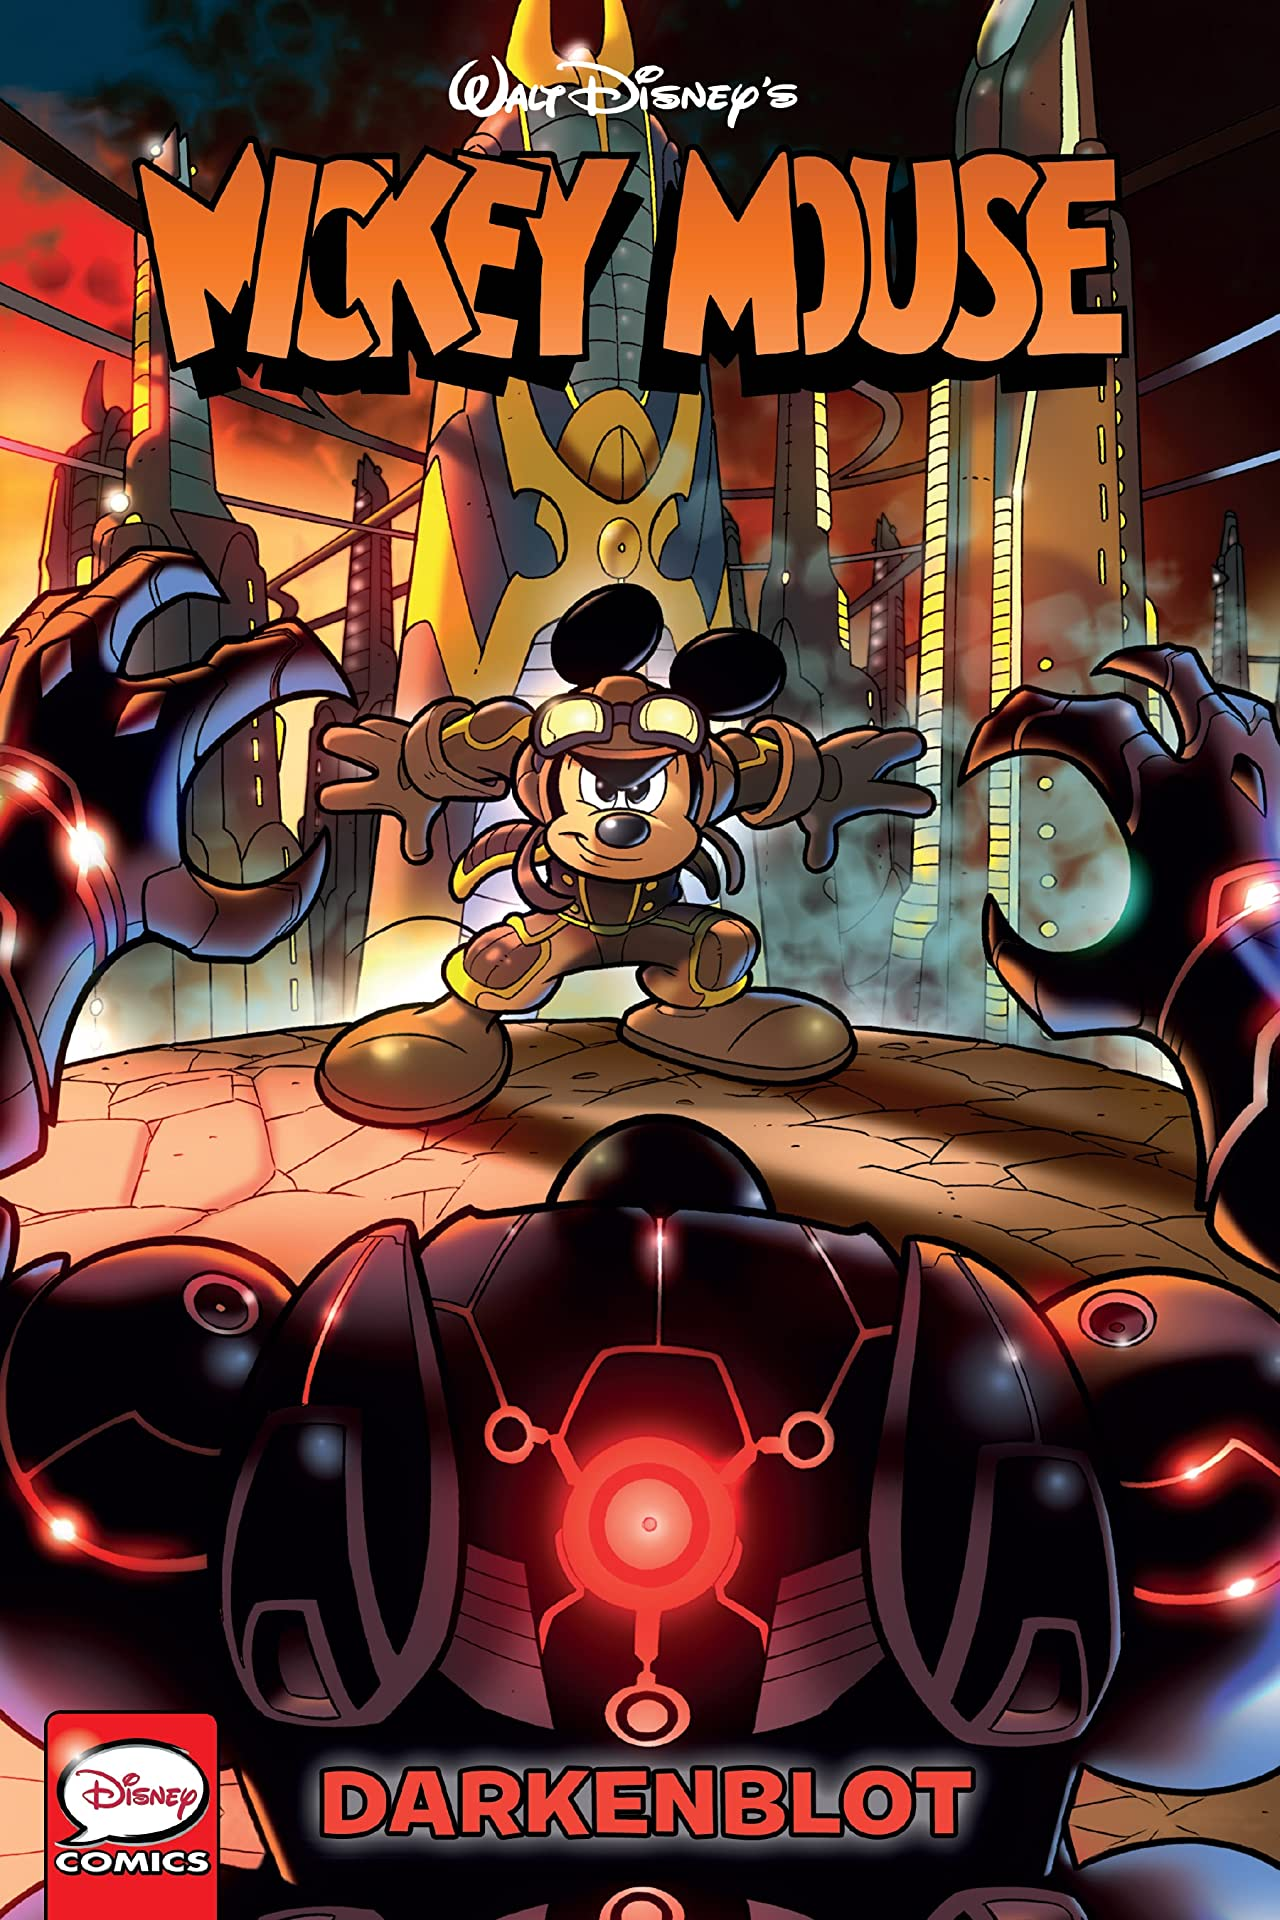 Mickey Mouse Vol. 6: Darkenblot